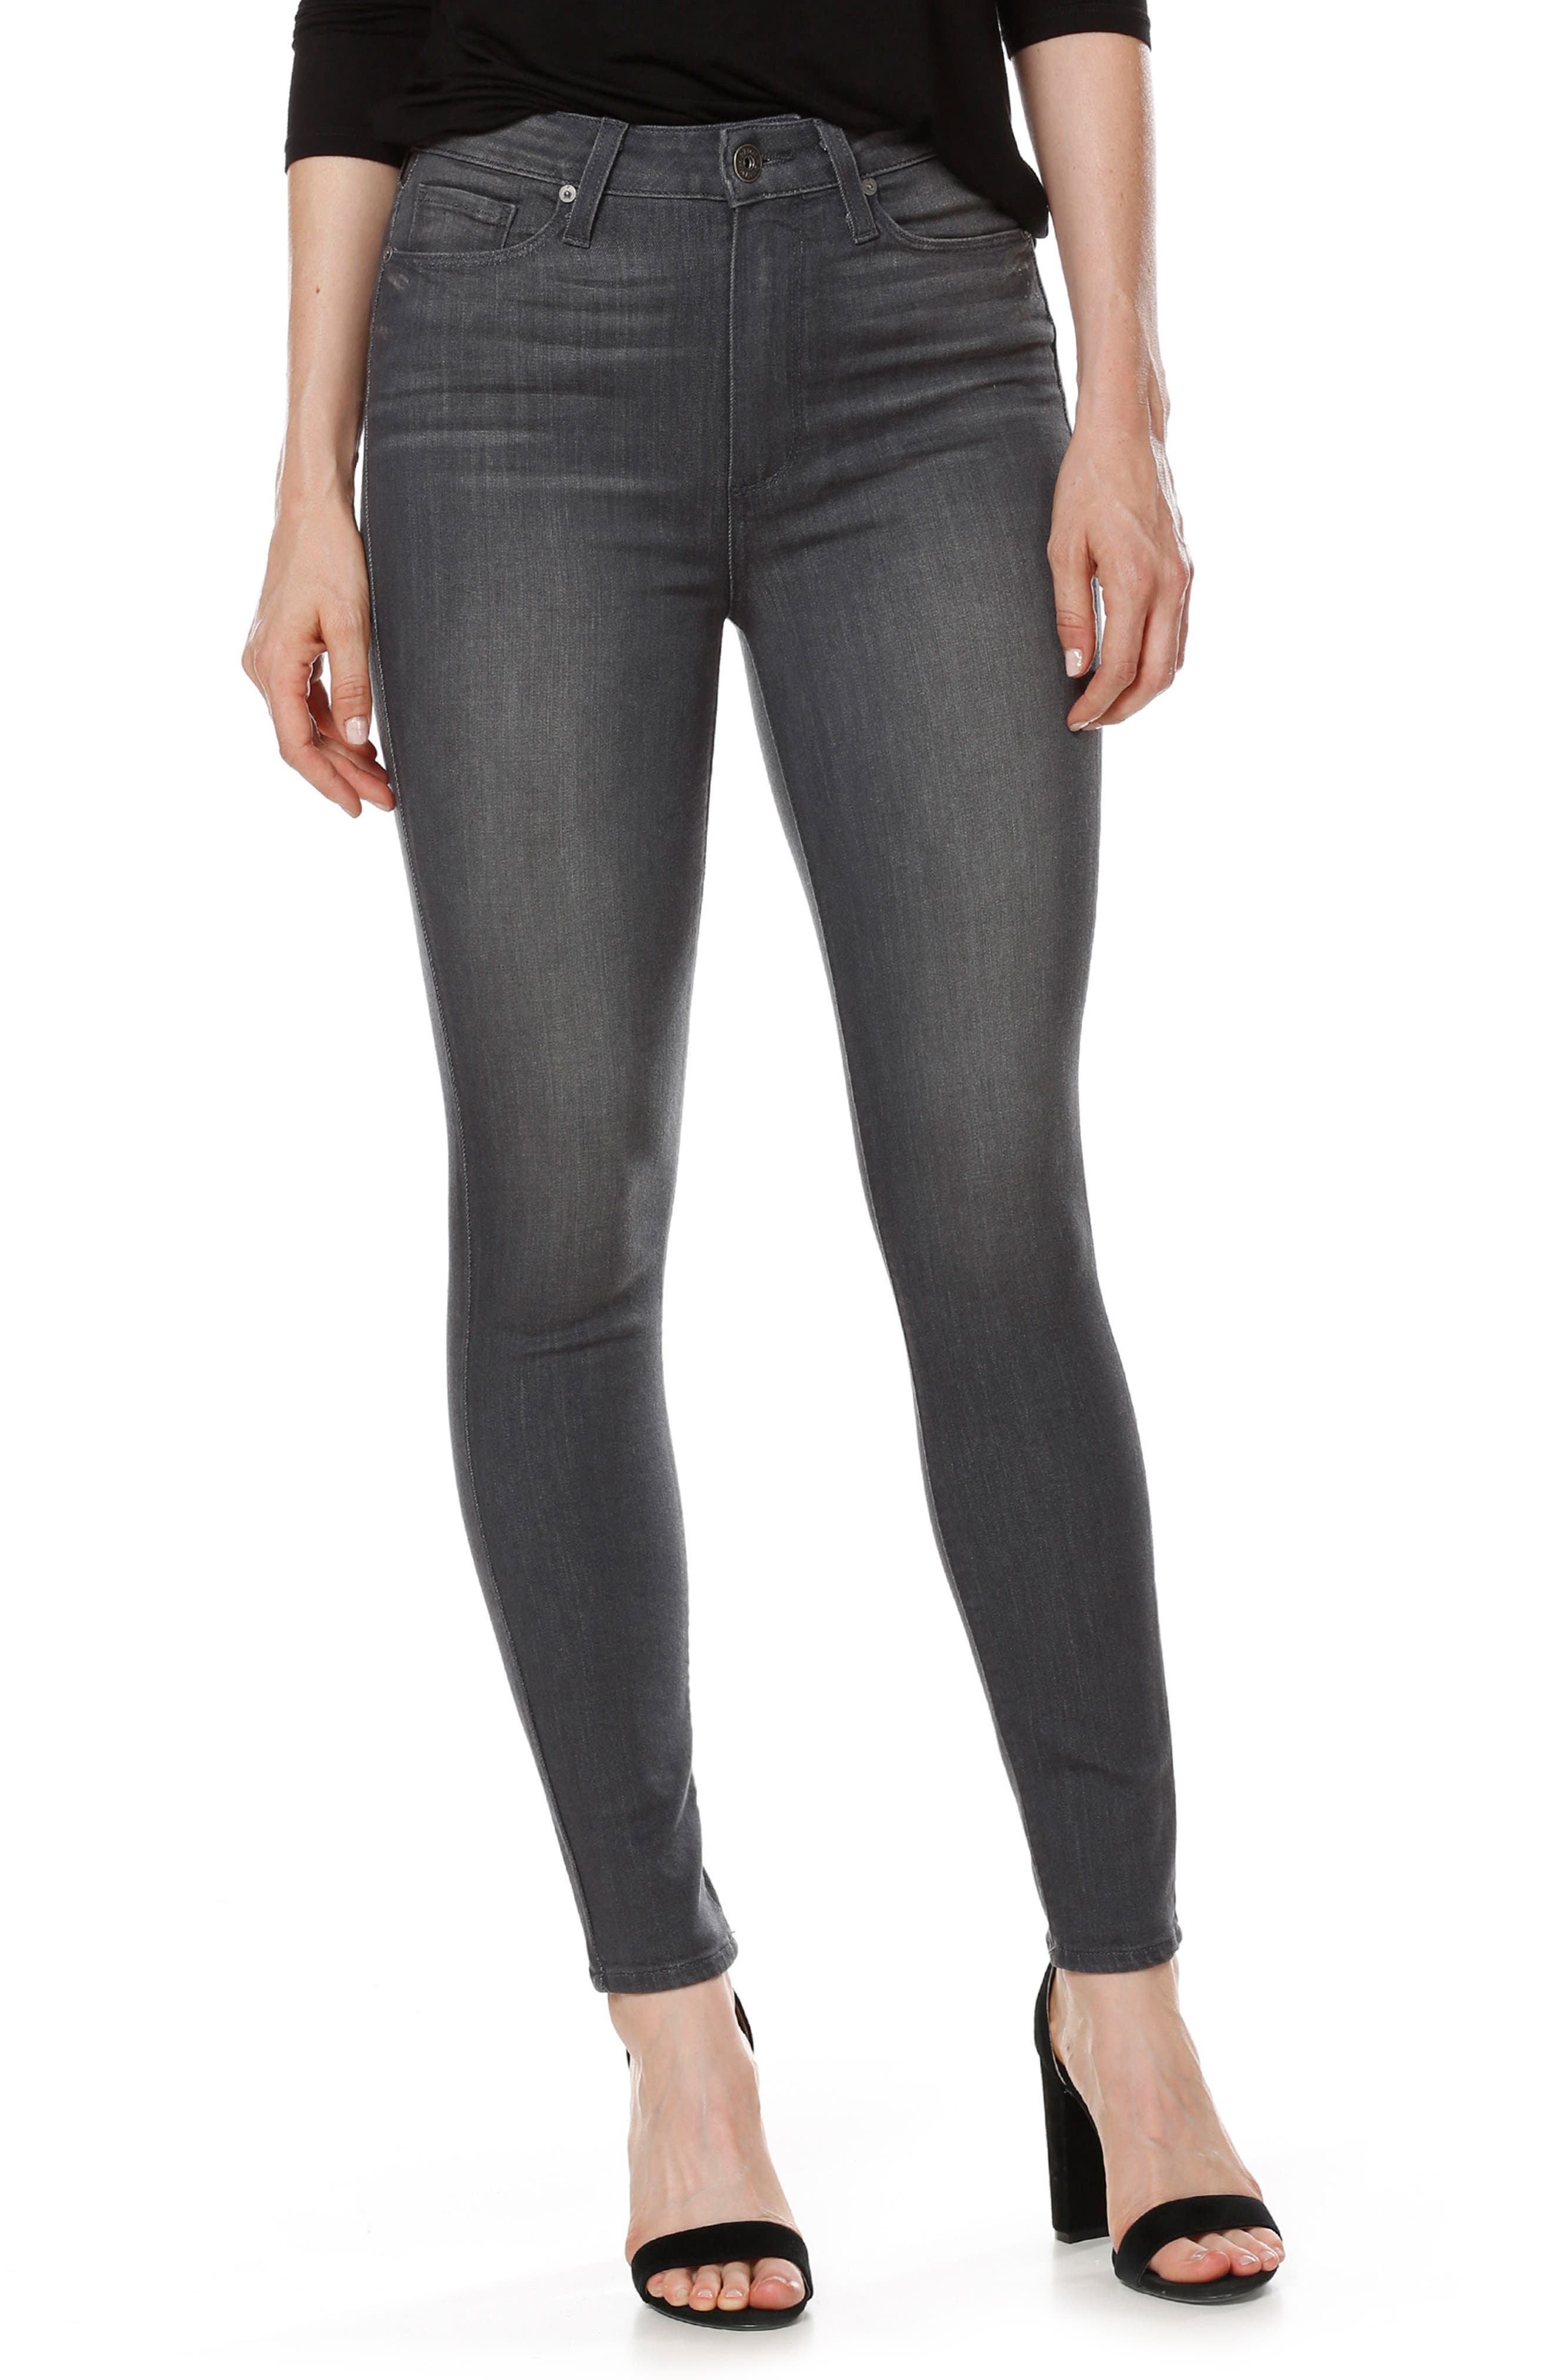 PAIGE Transcend - Margot High Waist Ankle Ultra Skinny Jeans